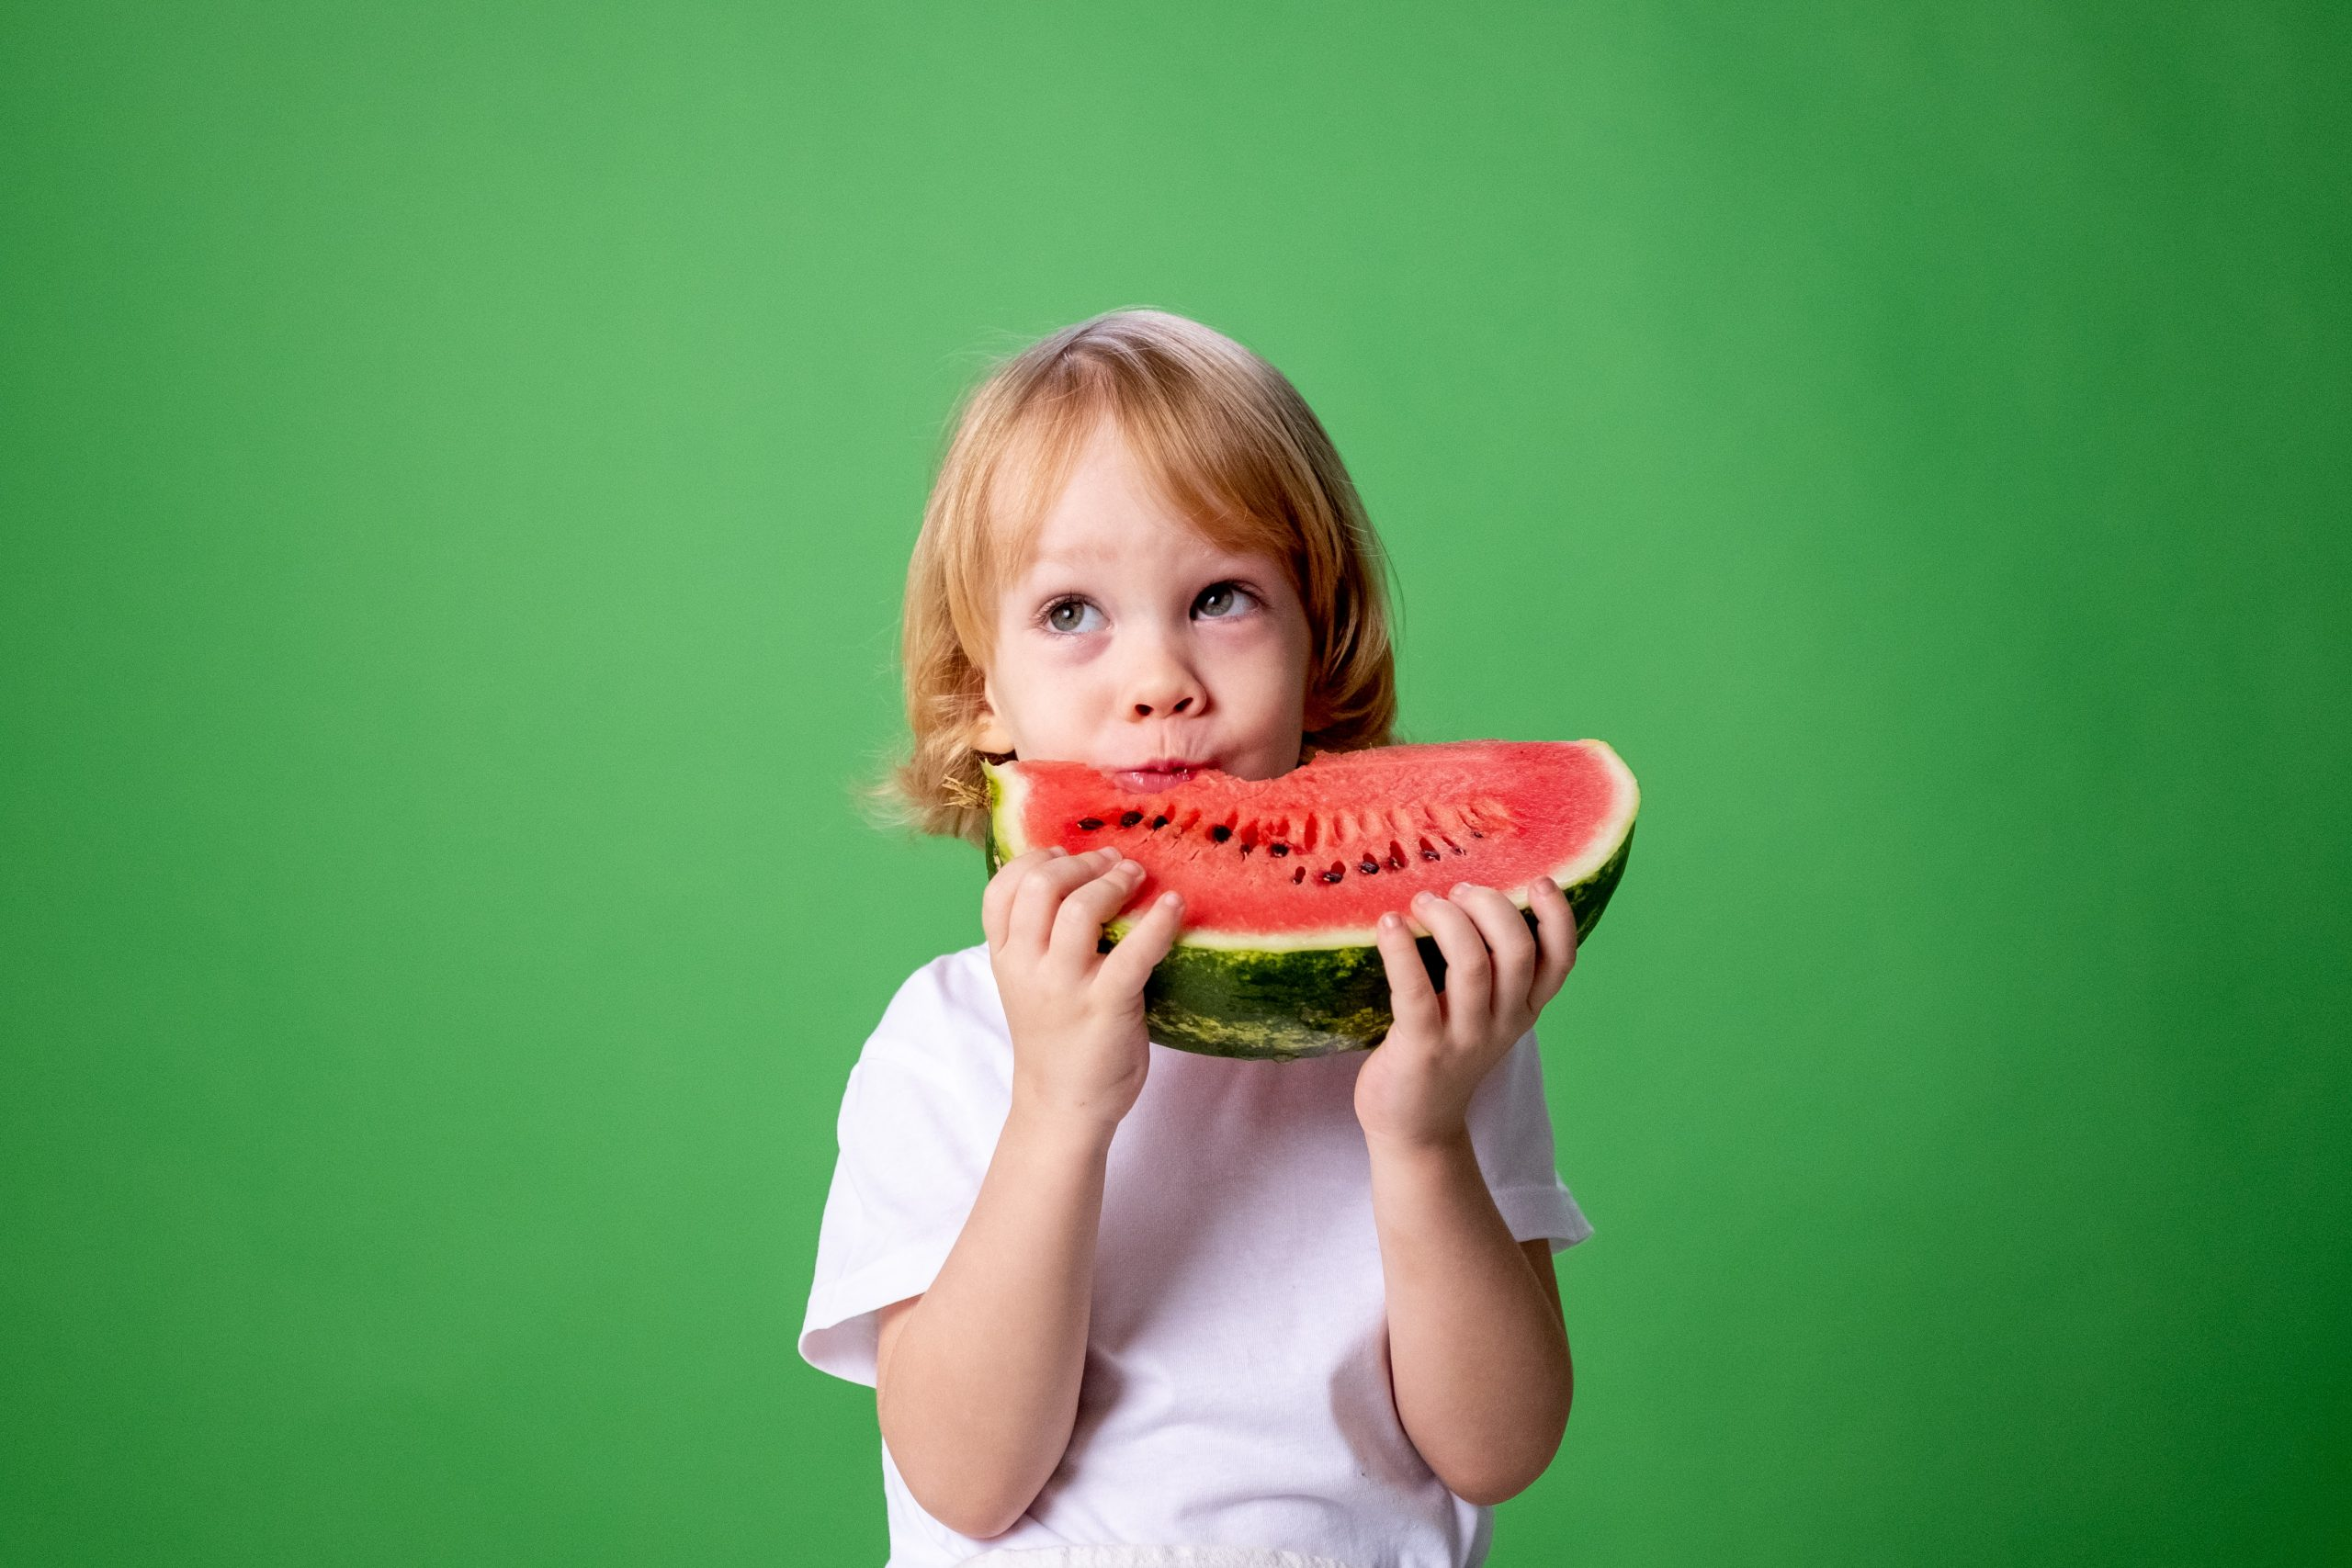 A toddler eating a watermelon Speech language feeding testing assessments scaled